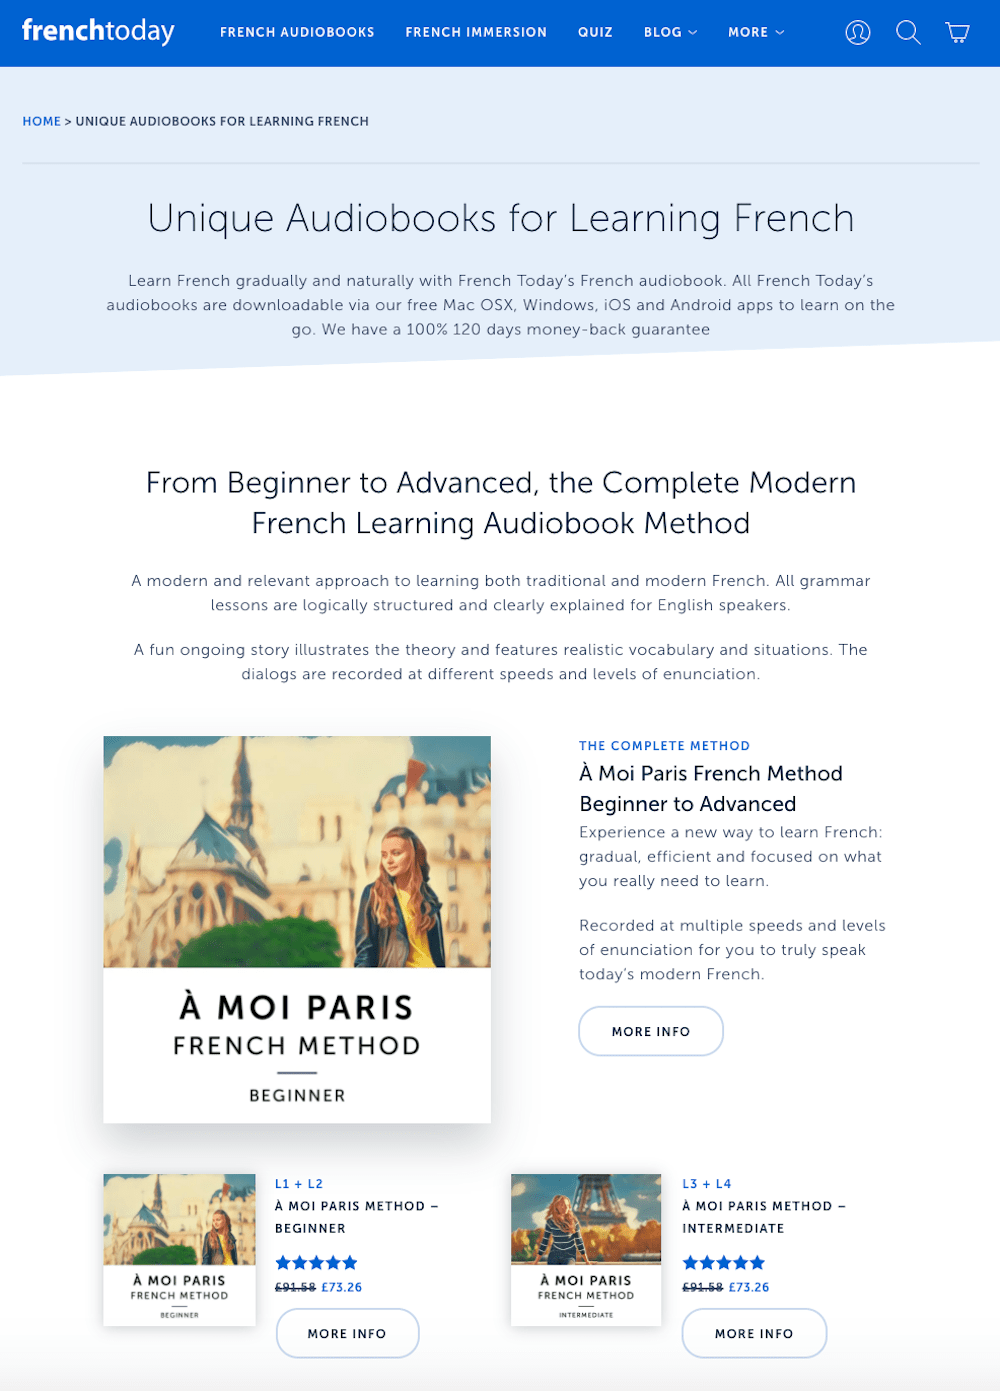 French Today audiobook landing page